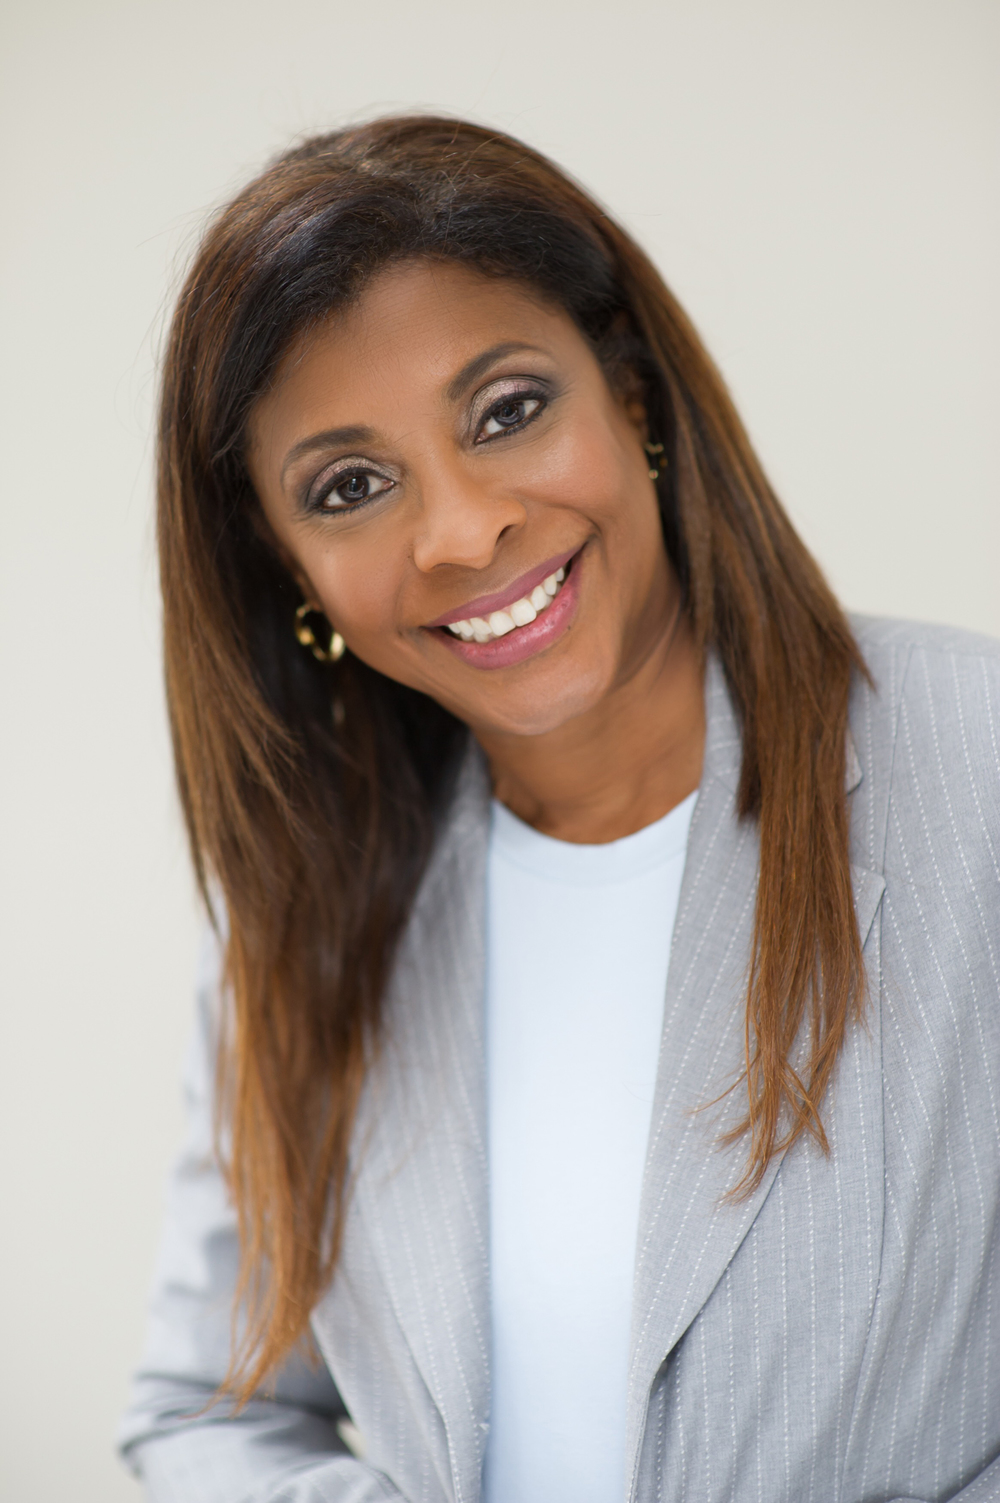 DeRonda Williams, Founder of DGW Consulting Group